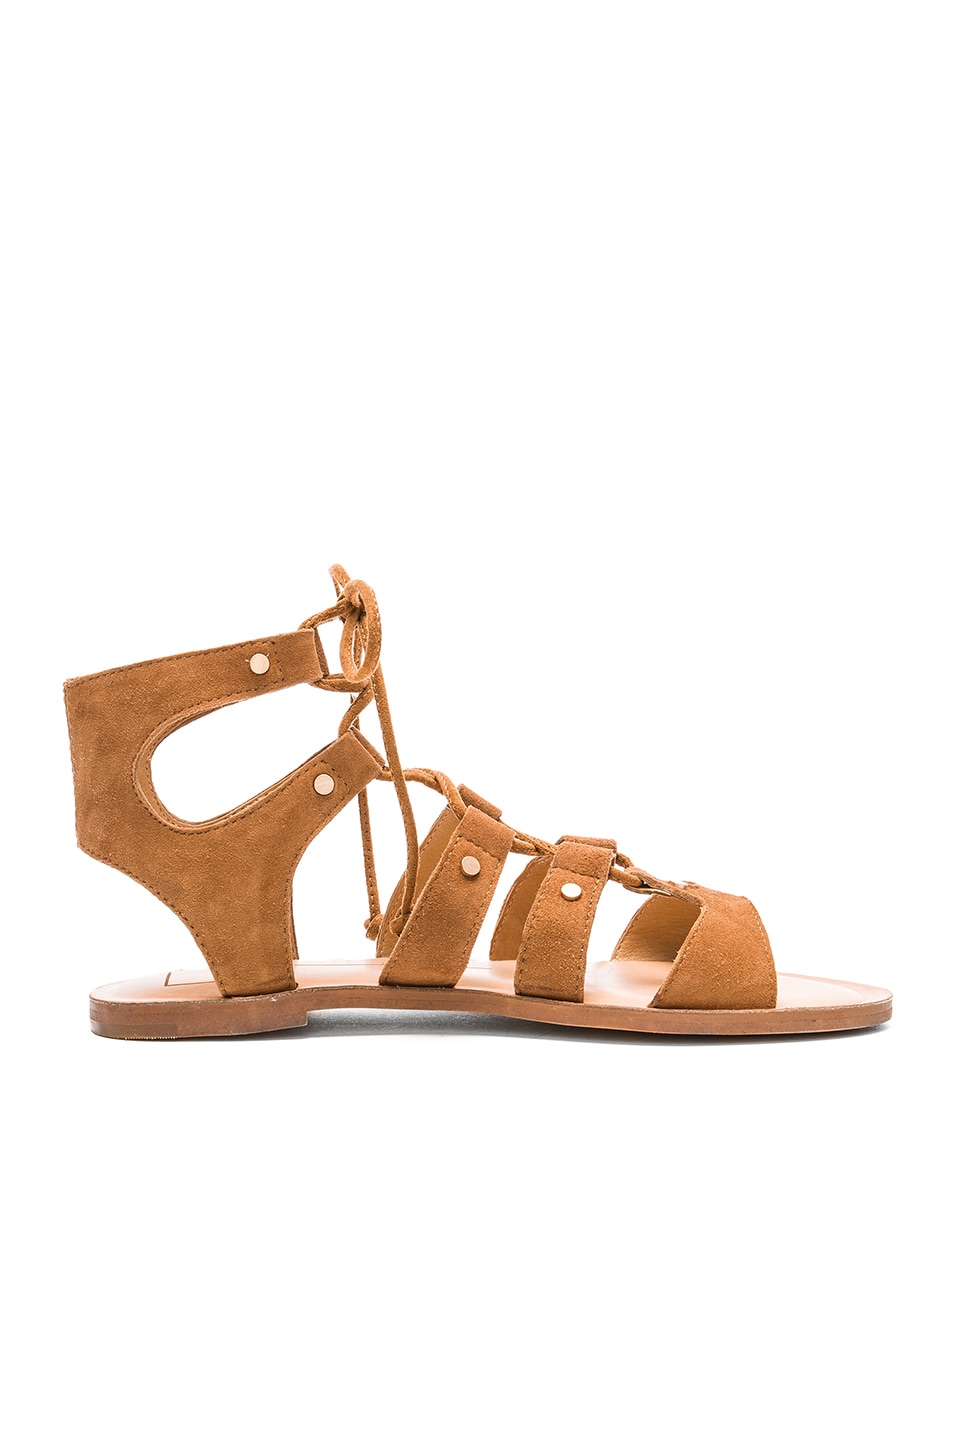 Dolce Vita Jasmyn Sandal in Dark Saddle